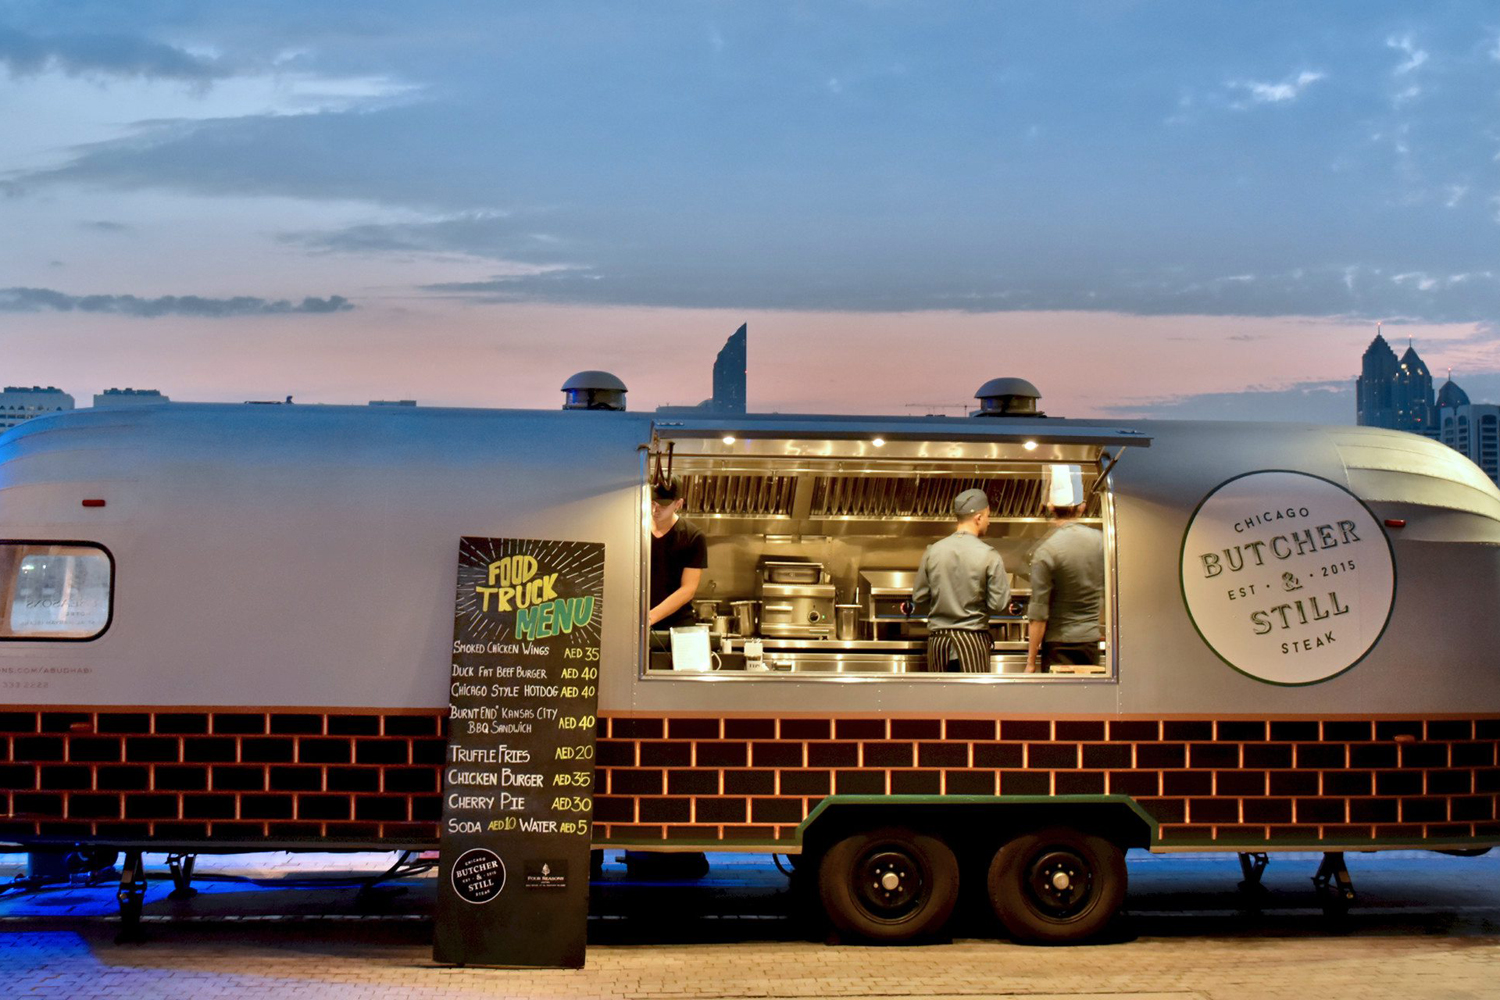 Food Truck License in Dubai - Process To Apply Food Truck License